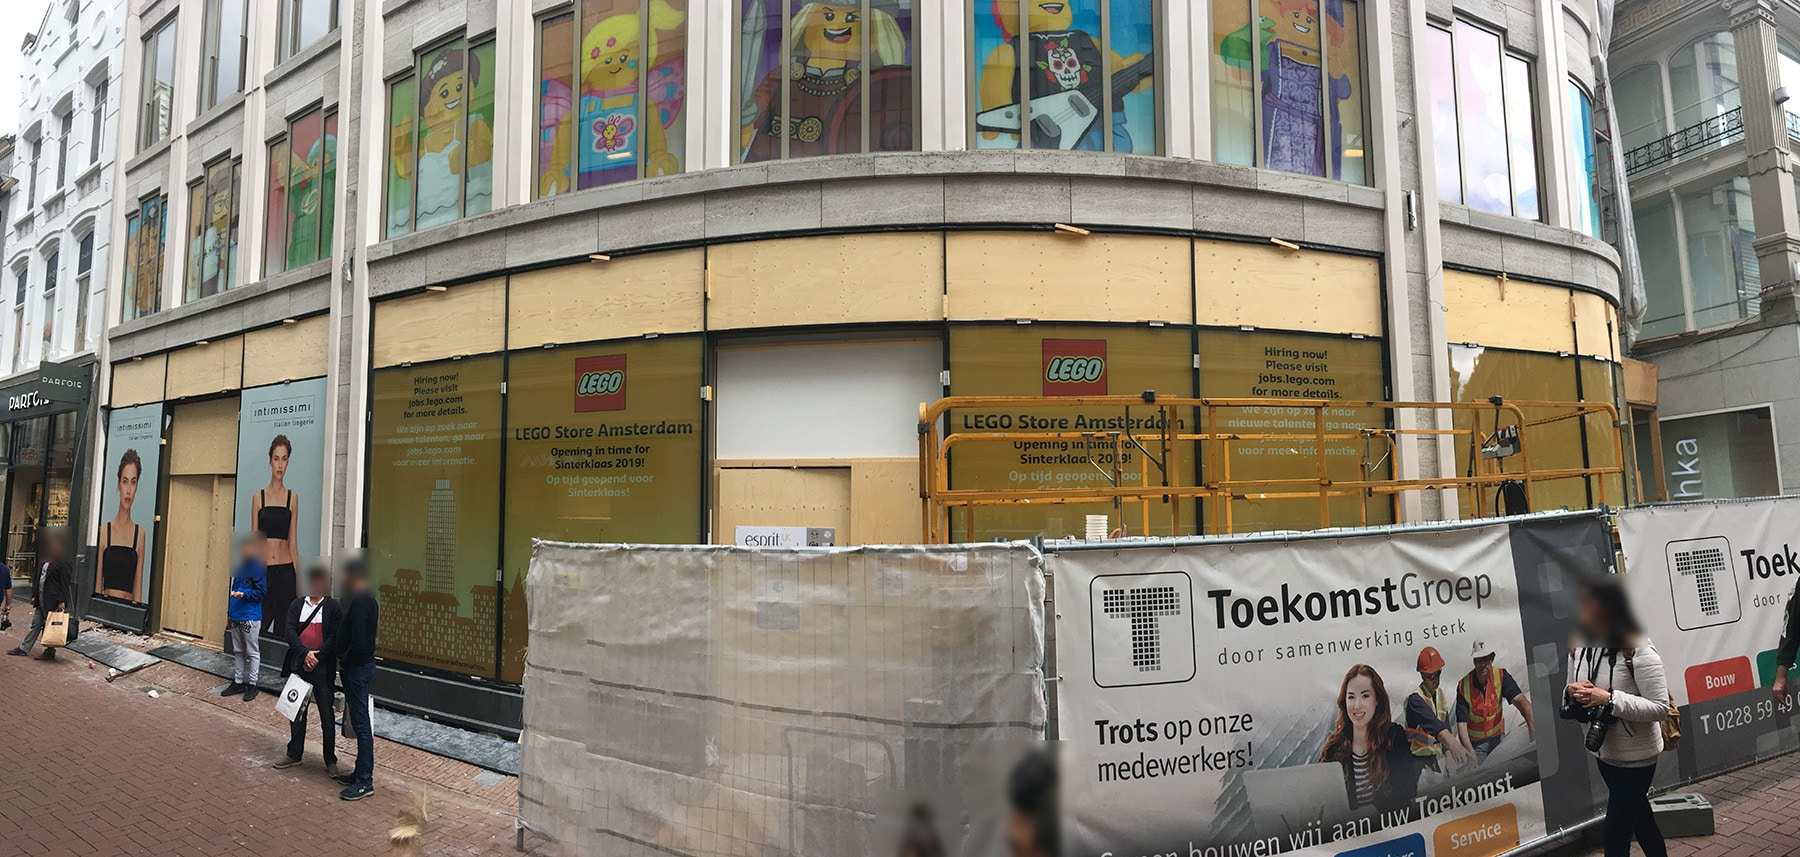 LEGO Flagship Store Amsterdam Baustelle